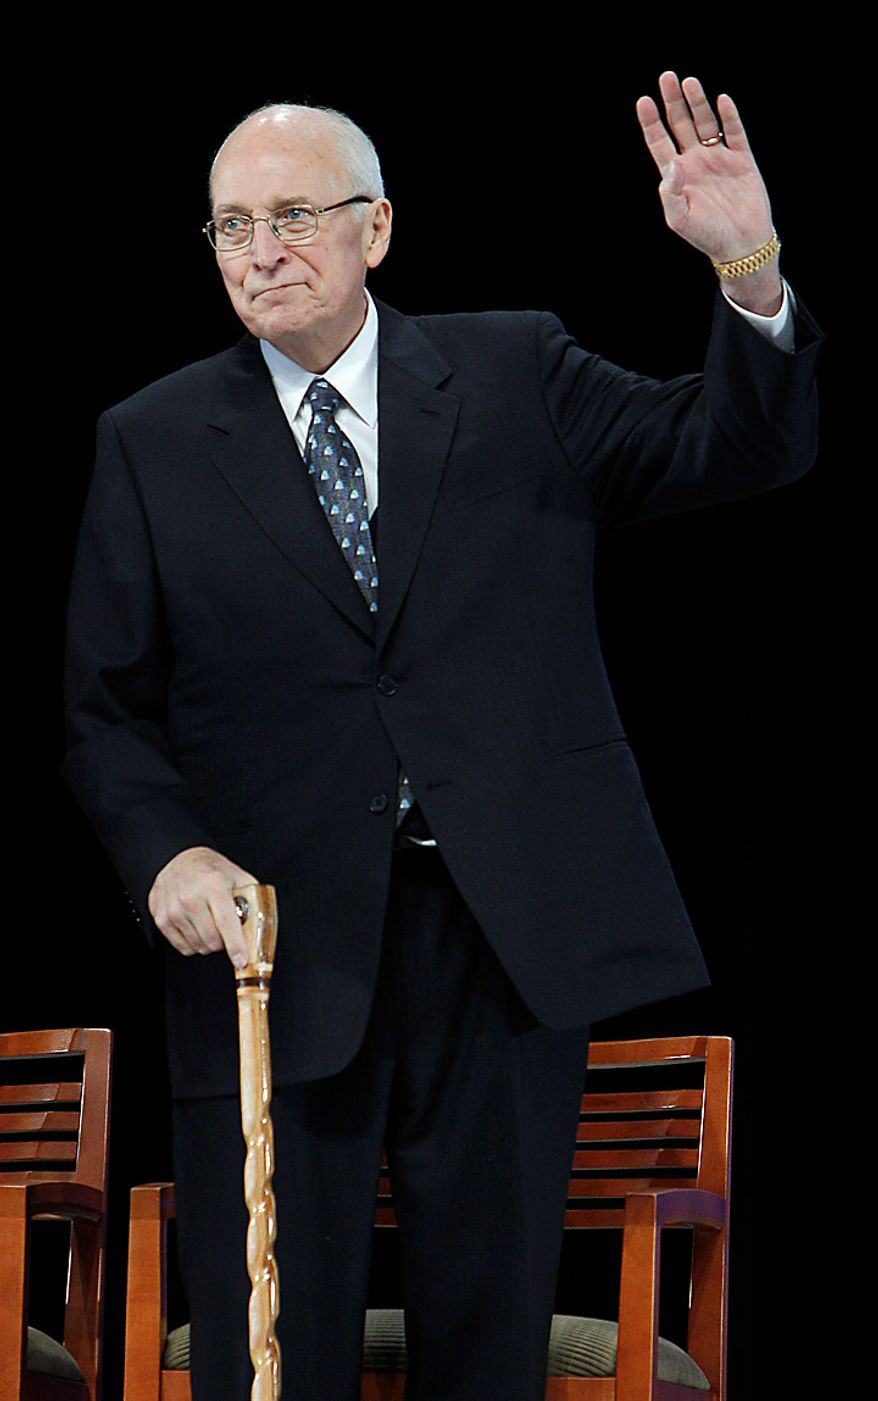 Former Vice President Dick Cheney waves during the groundbreaking ceremony for the President George W. Bush Presidential Center in Dallas, Tuesday, Nov. 16, 2010. (AP Photo/LM Otero)